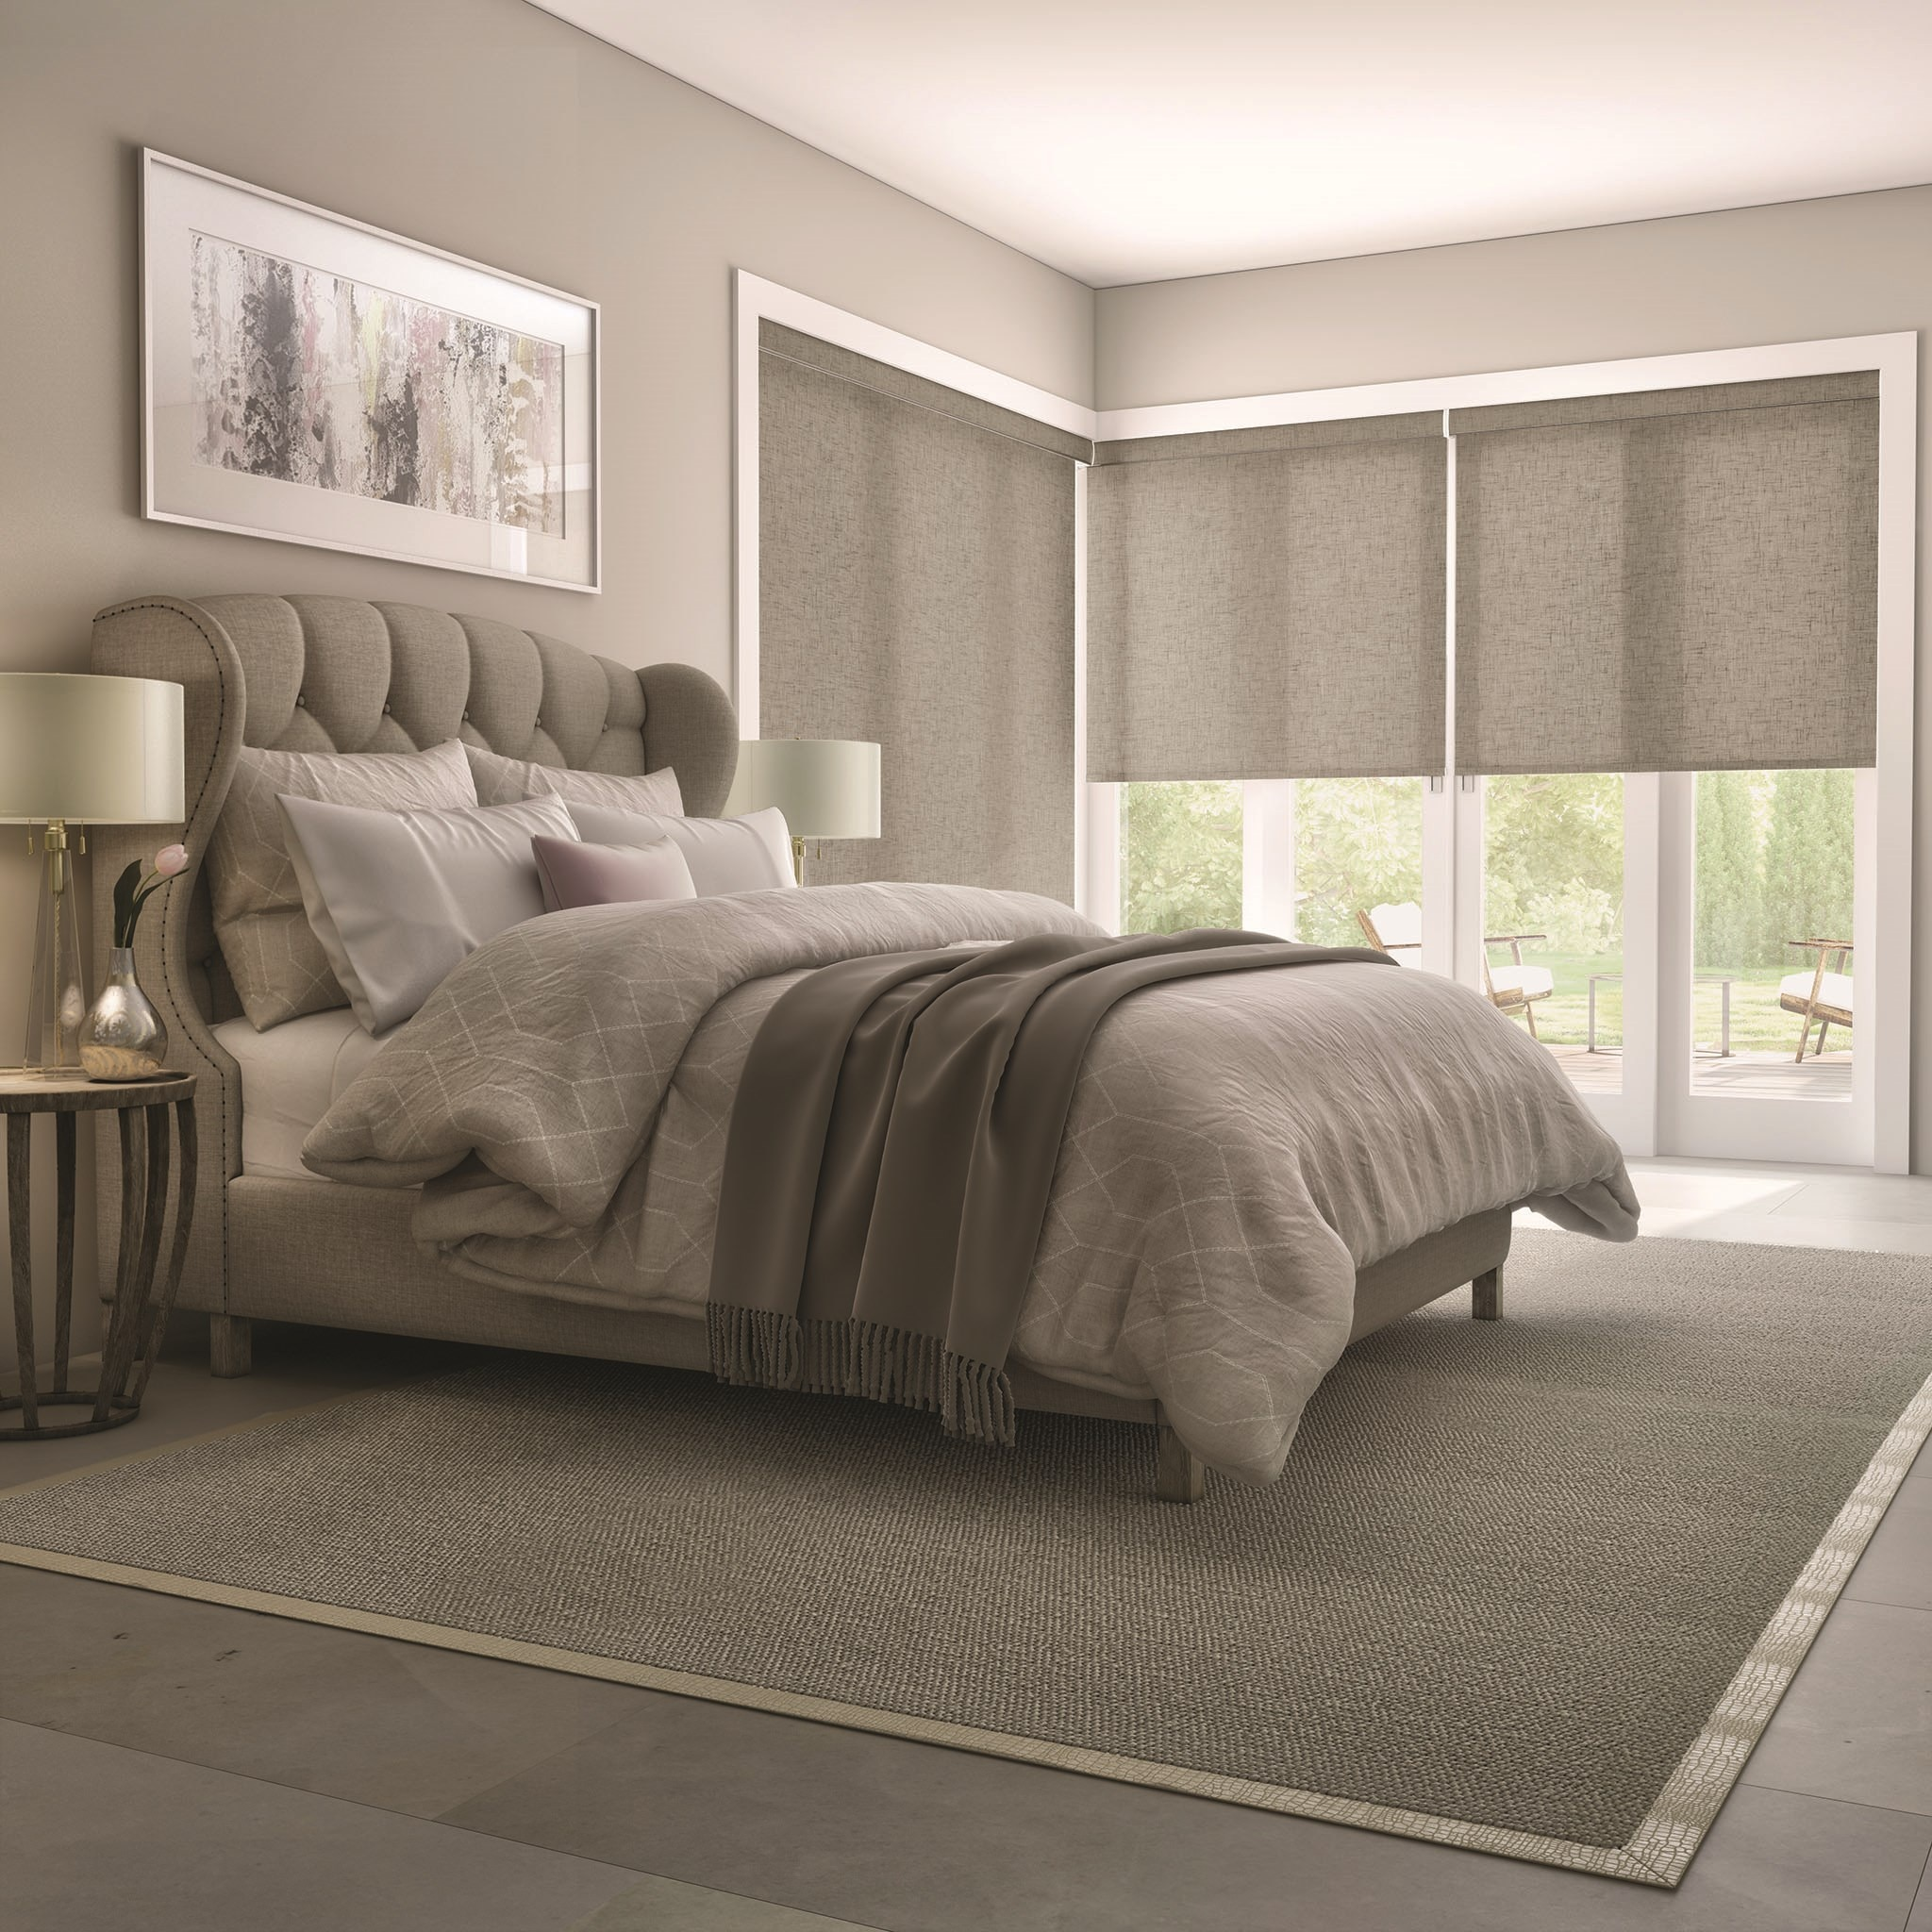 Levolor: Roller Shades - Room Darkening